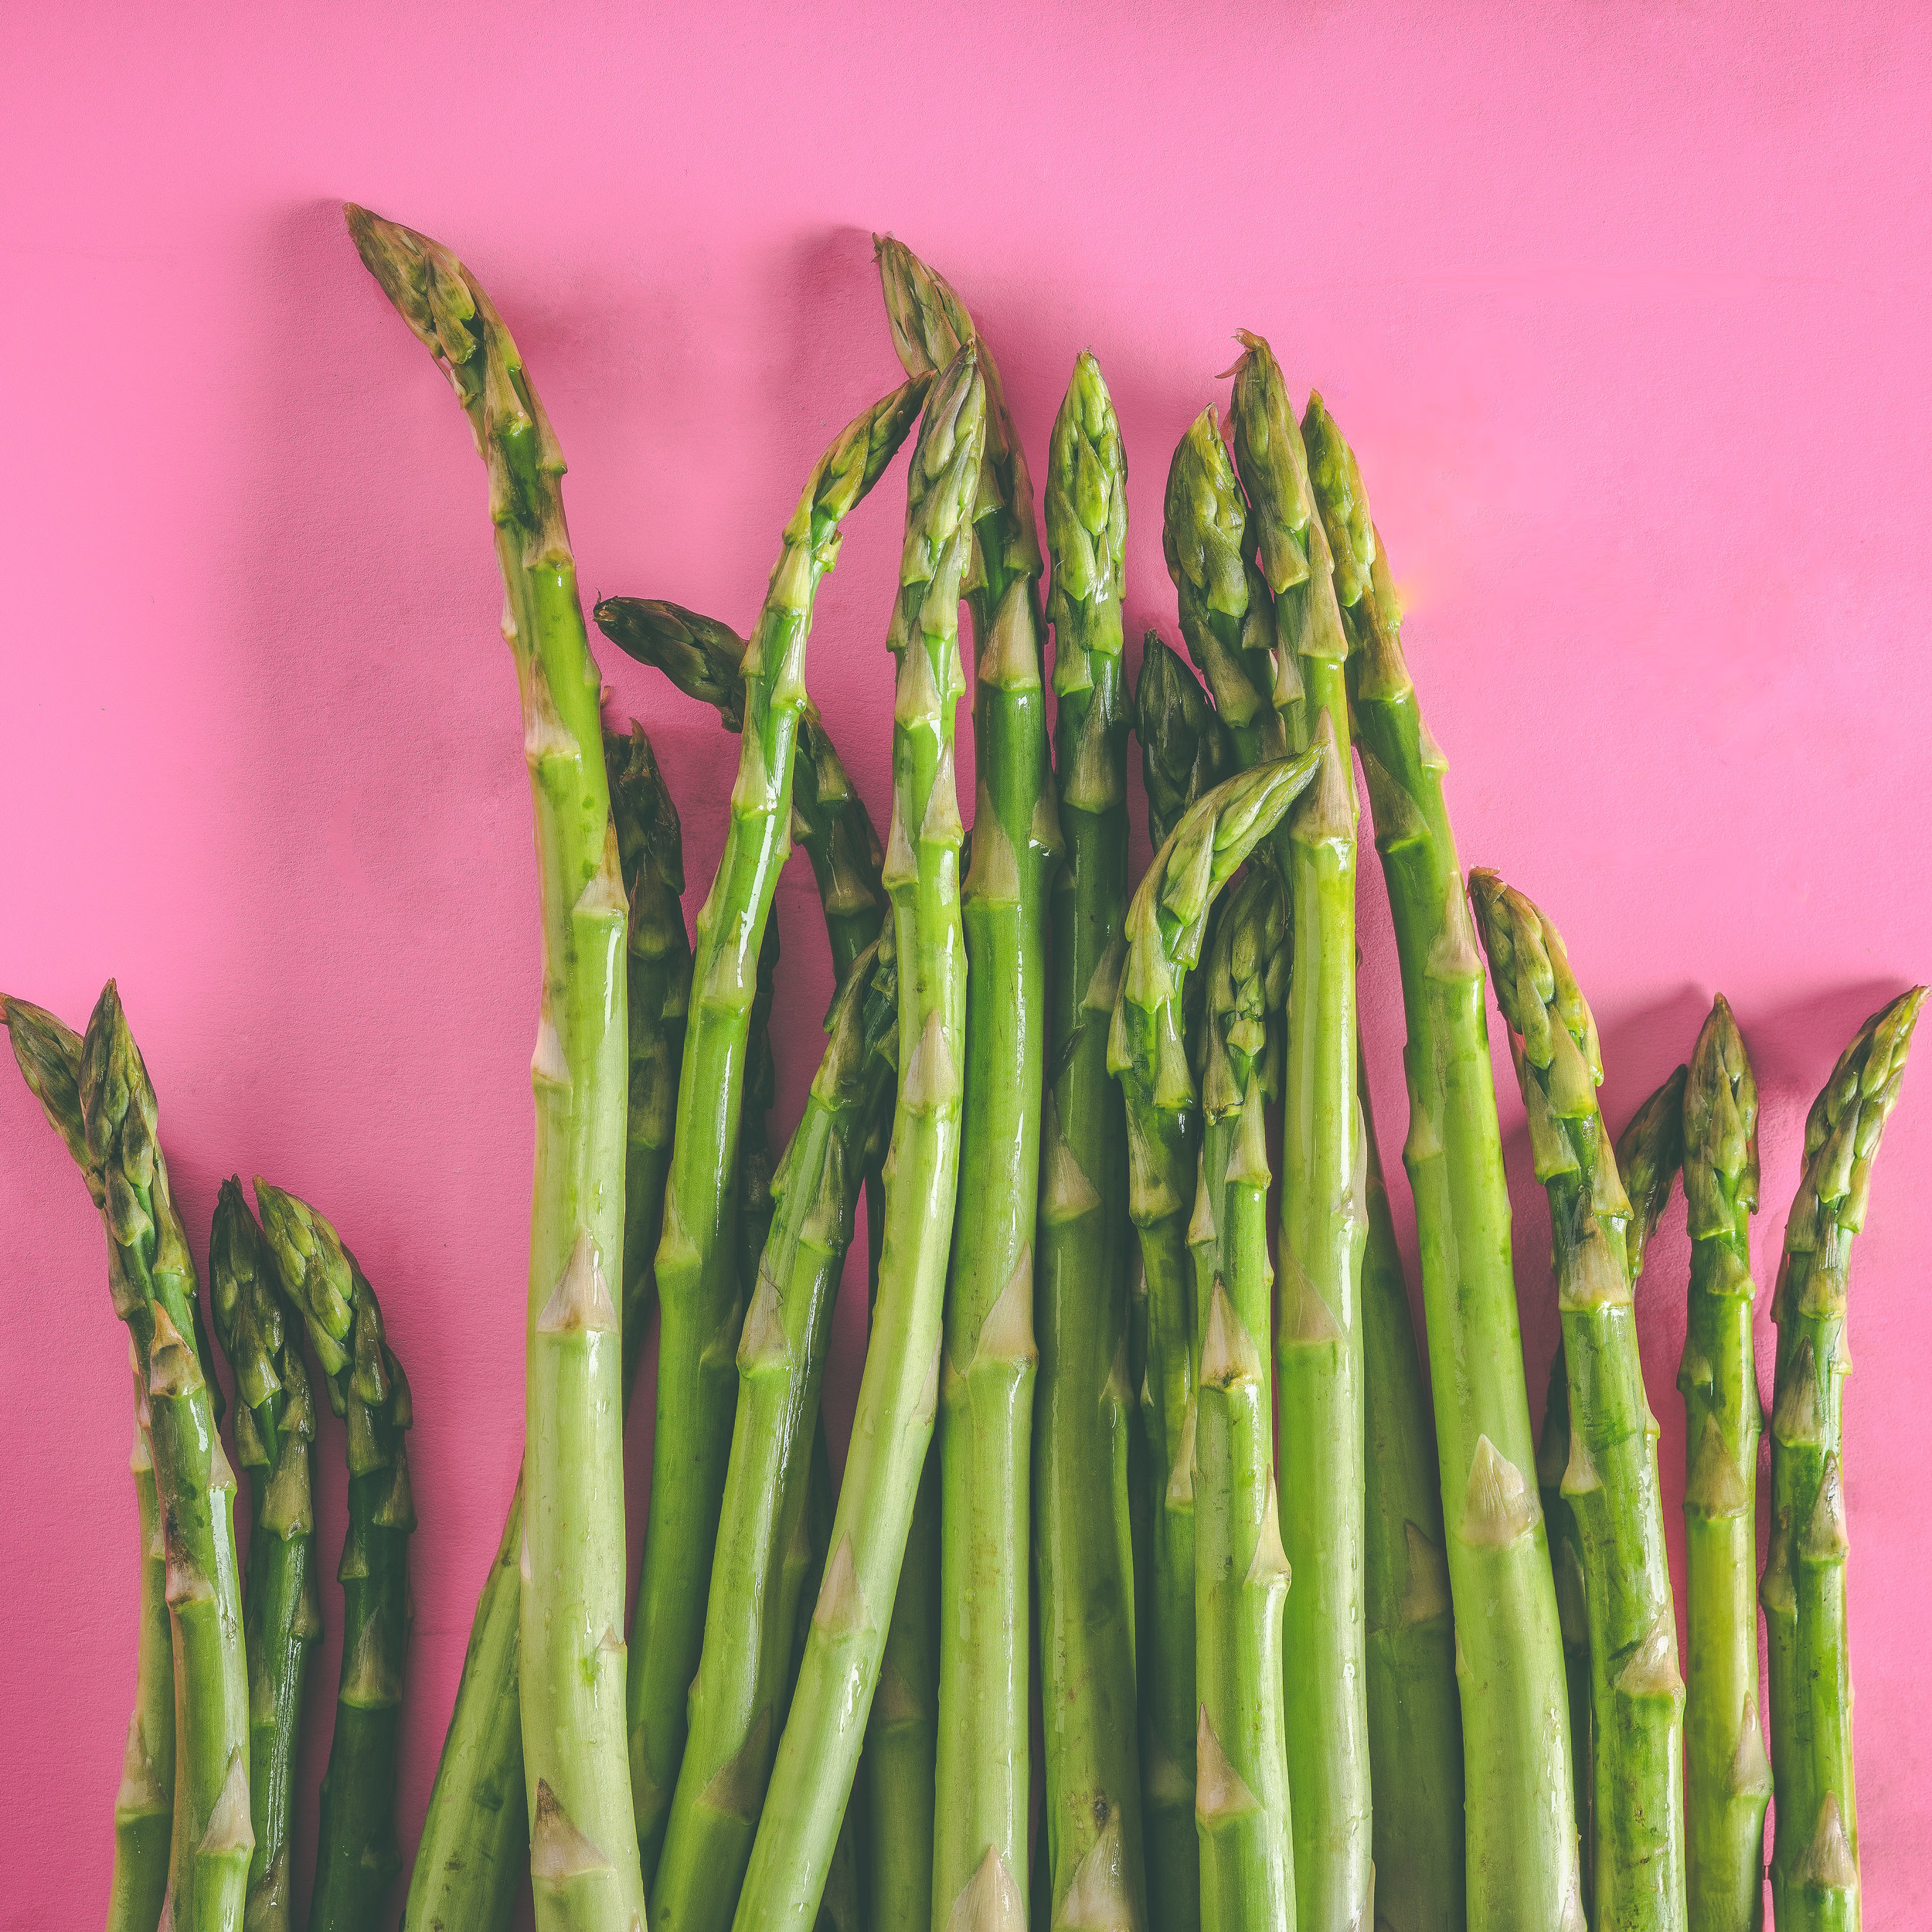 Asparagus - Asparagus is packed full of Vitamins and minerals including Vitamins A, C, E, K, B6, folate, iron, copper, calcium, protein, antioxidants and fiber. It is low in fat and calories and high in soluble and insoluble fiber.